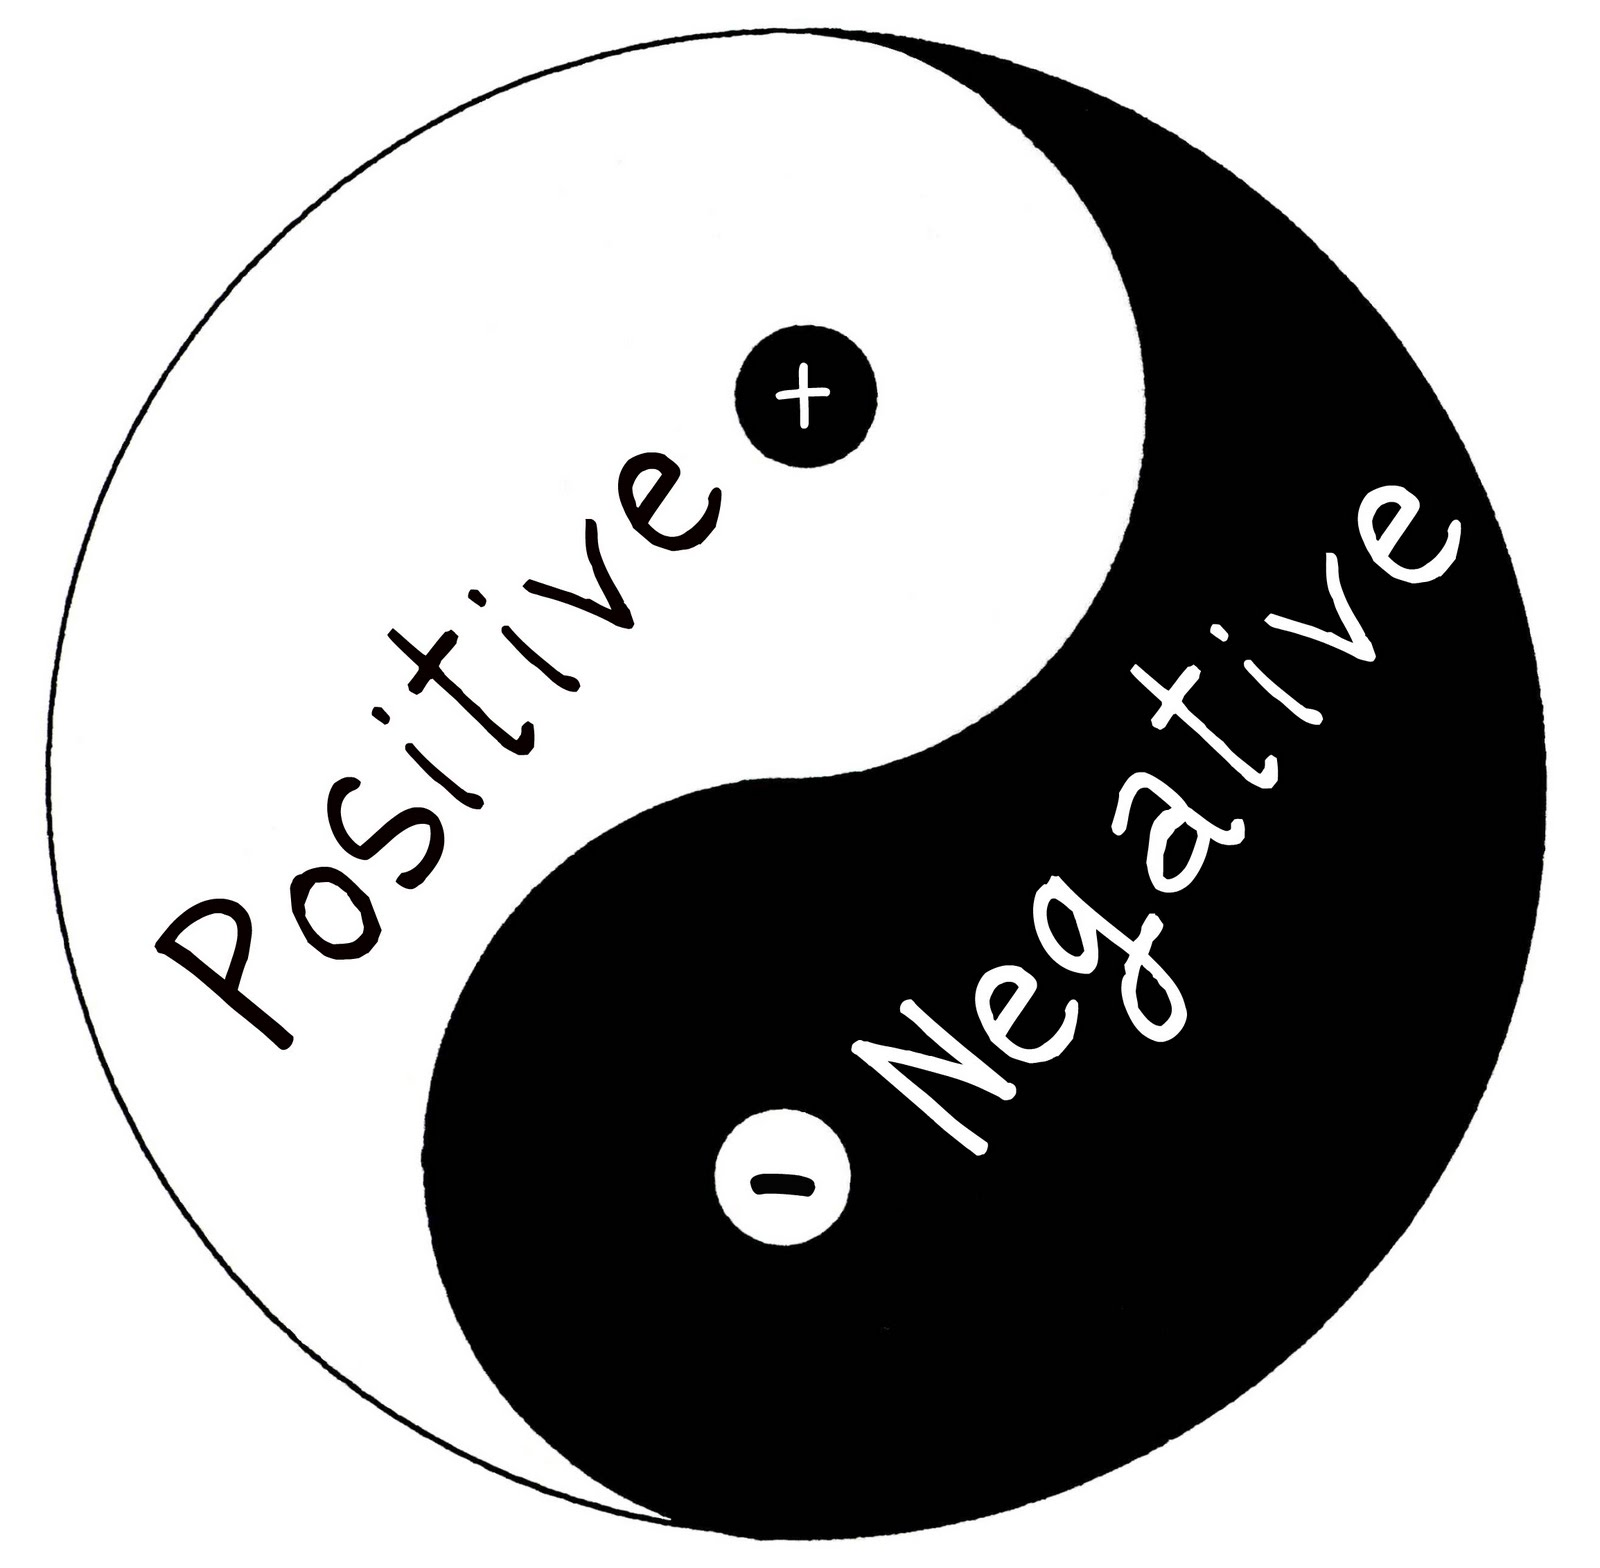 Positive and negative sign